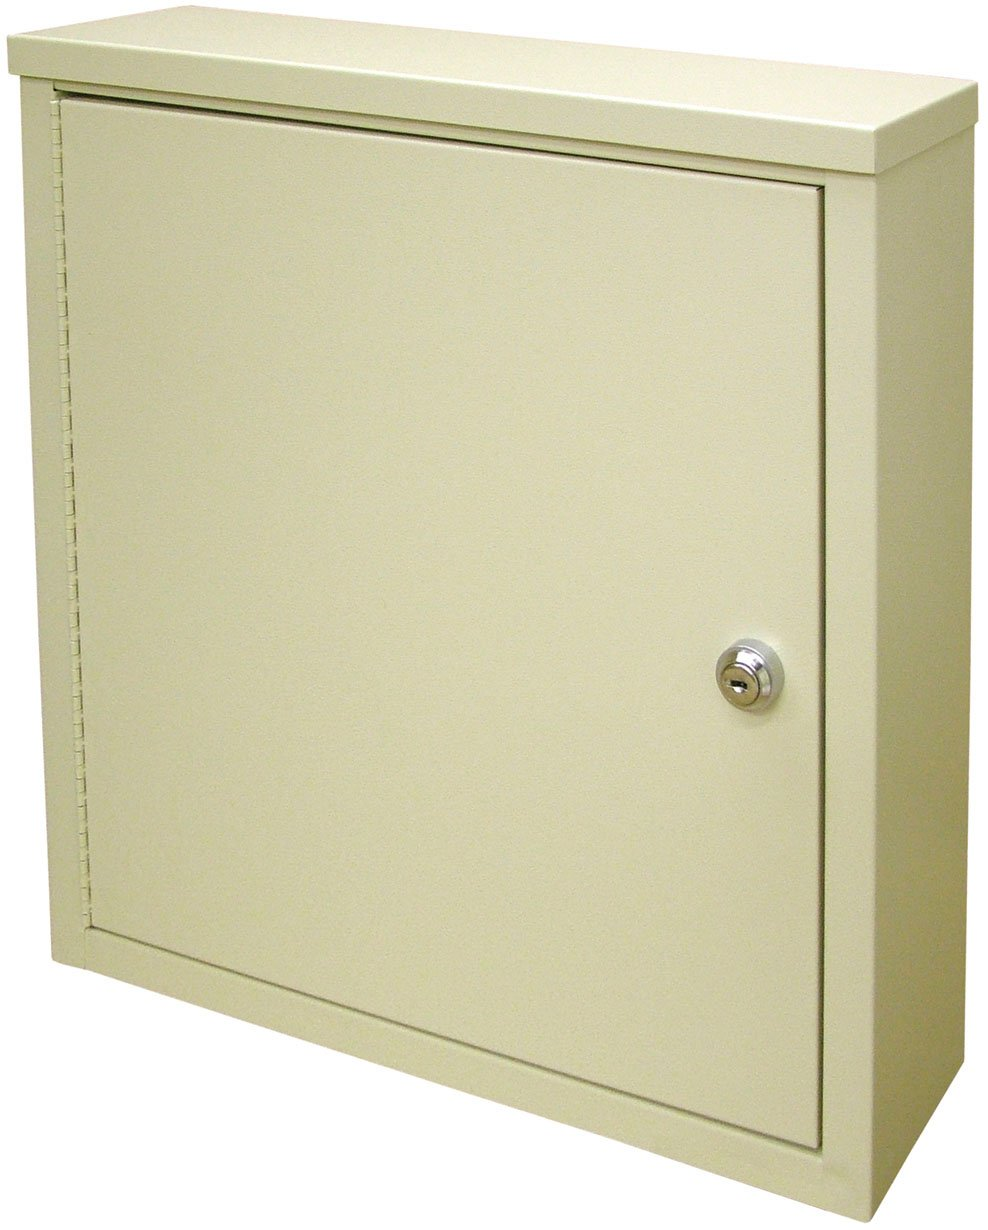 Small Wall Storage Cabinet - Beige